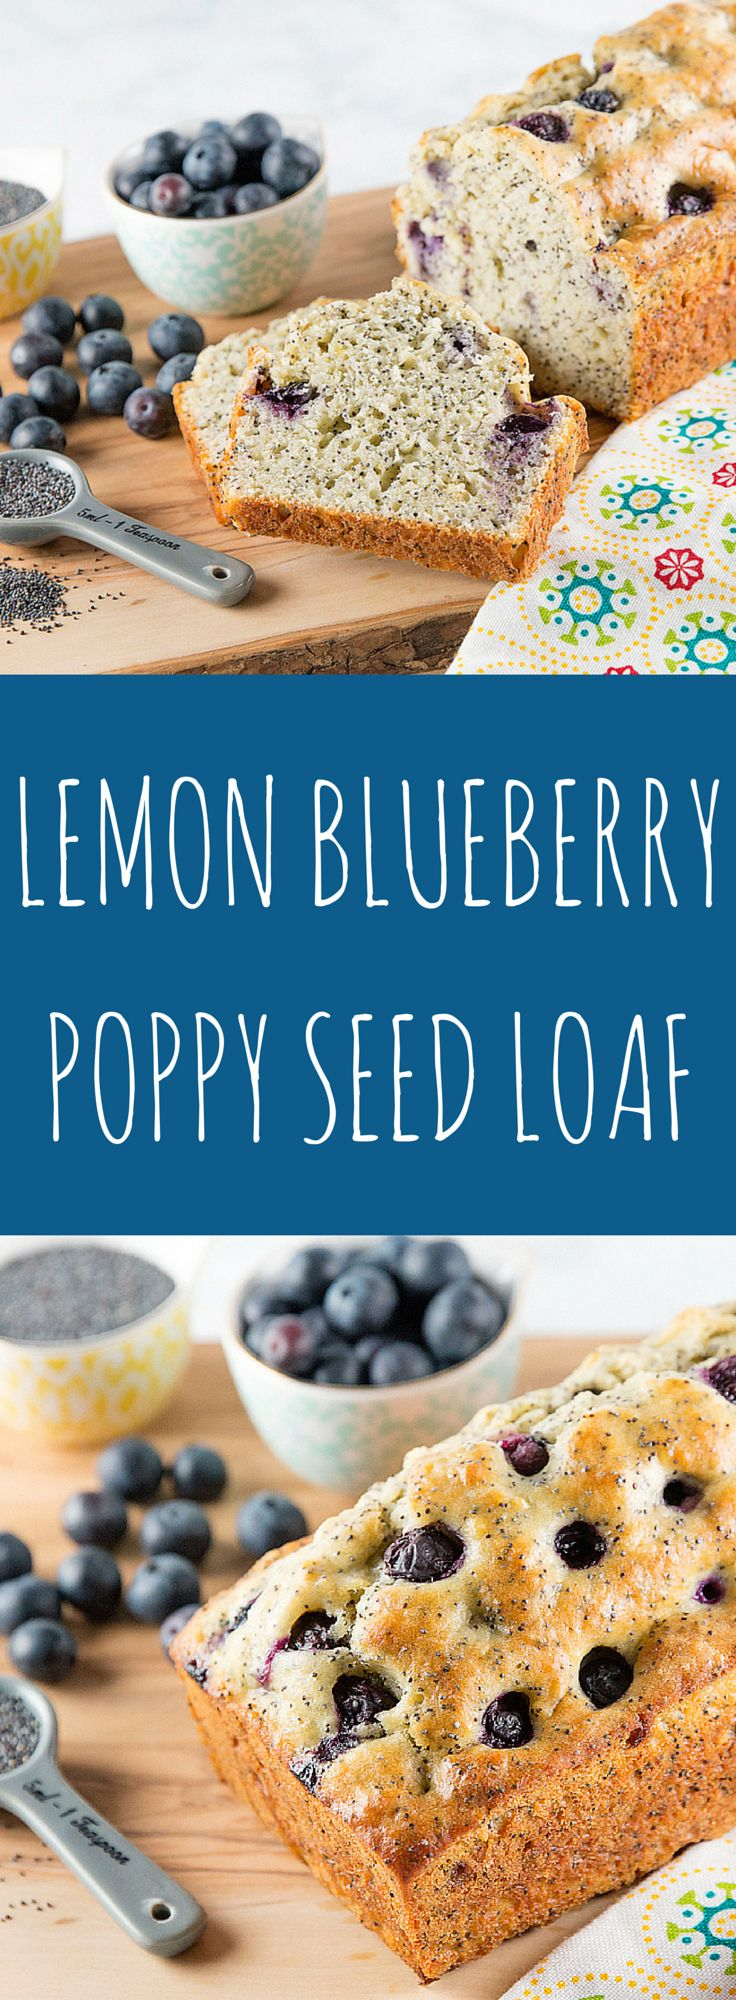 """This lemon blueberry poppy seed loaf is so """"berry"""" delish! Check it out! xoxoBella.com lemon, blueberry, loaf, bread, yummy, tasty, sweet, poppy seeds, lemon loaf, lemon loaf recipe, blueberry recipe, blueberry loaf"""